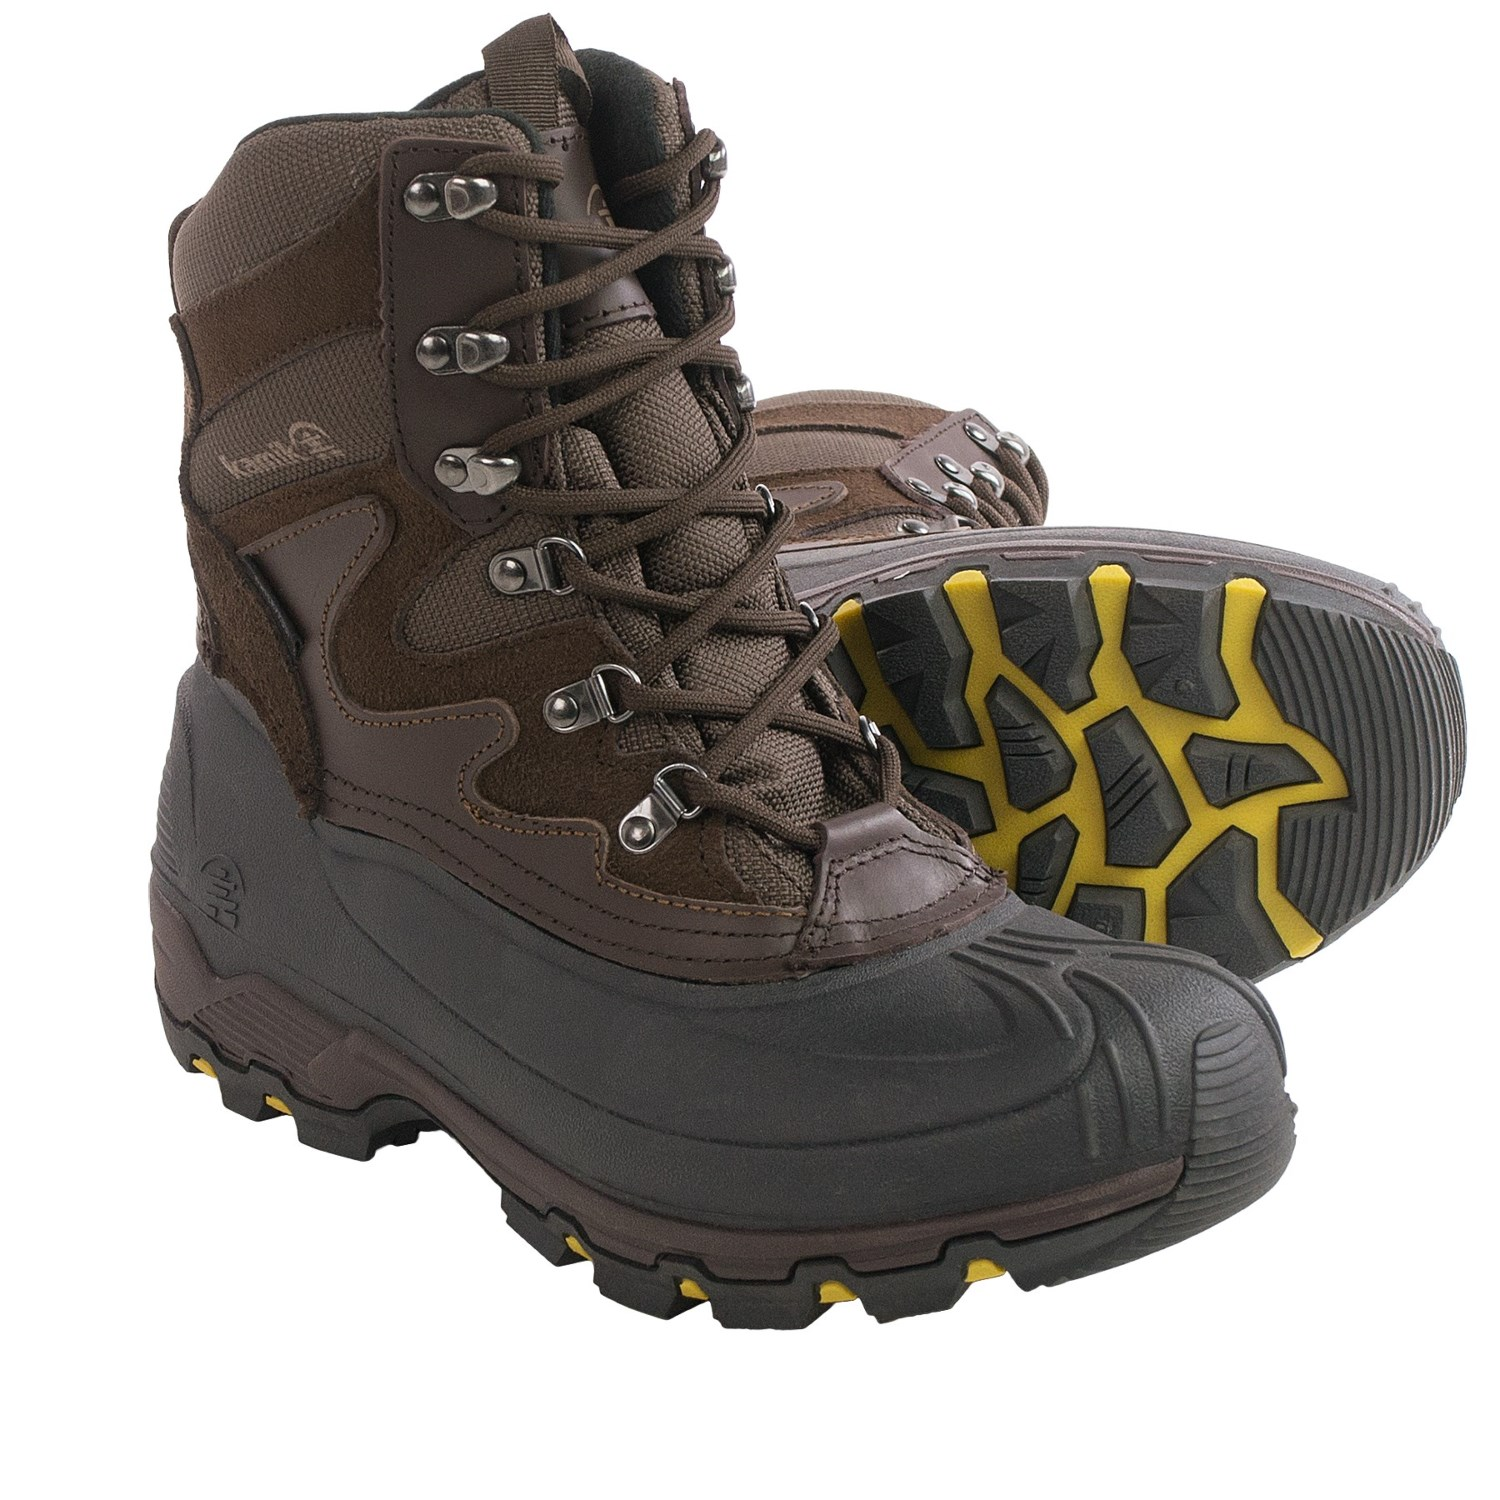 Kamik Thinsulate 174 Blackjack Snow Boots For Men Save 76